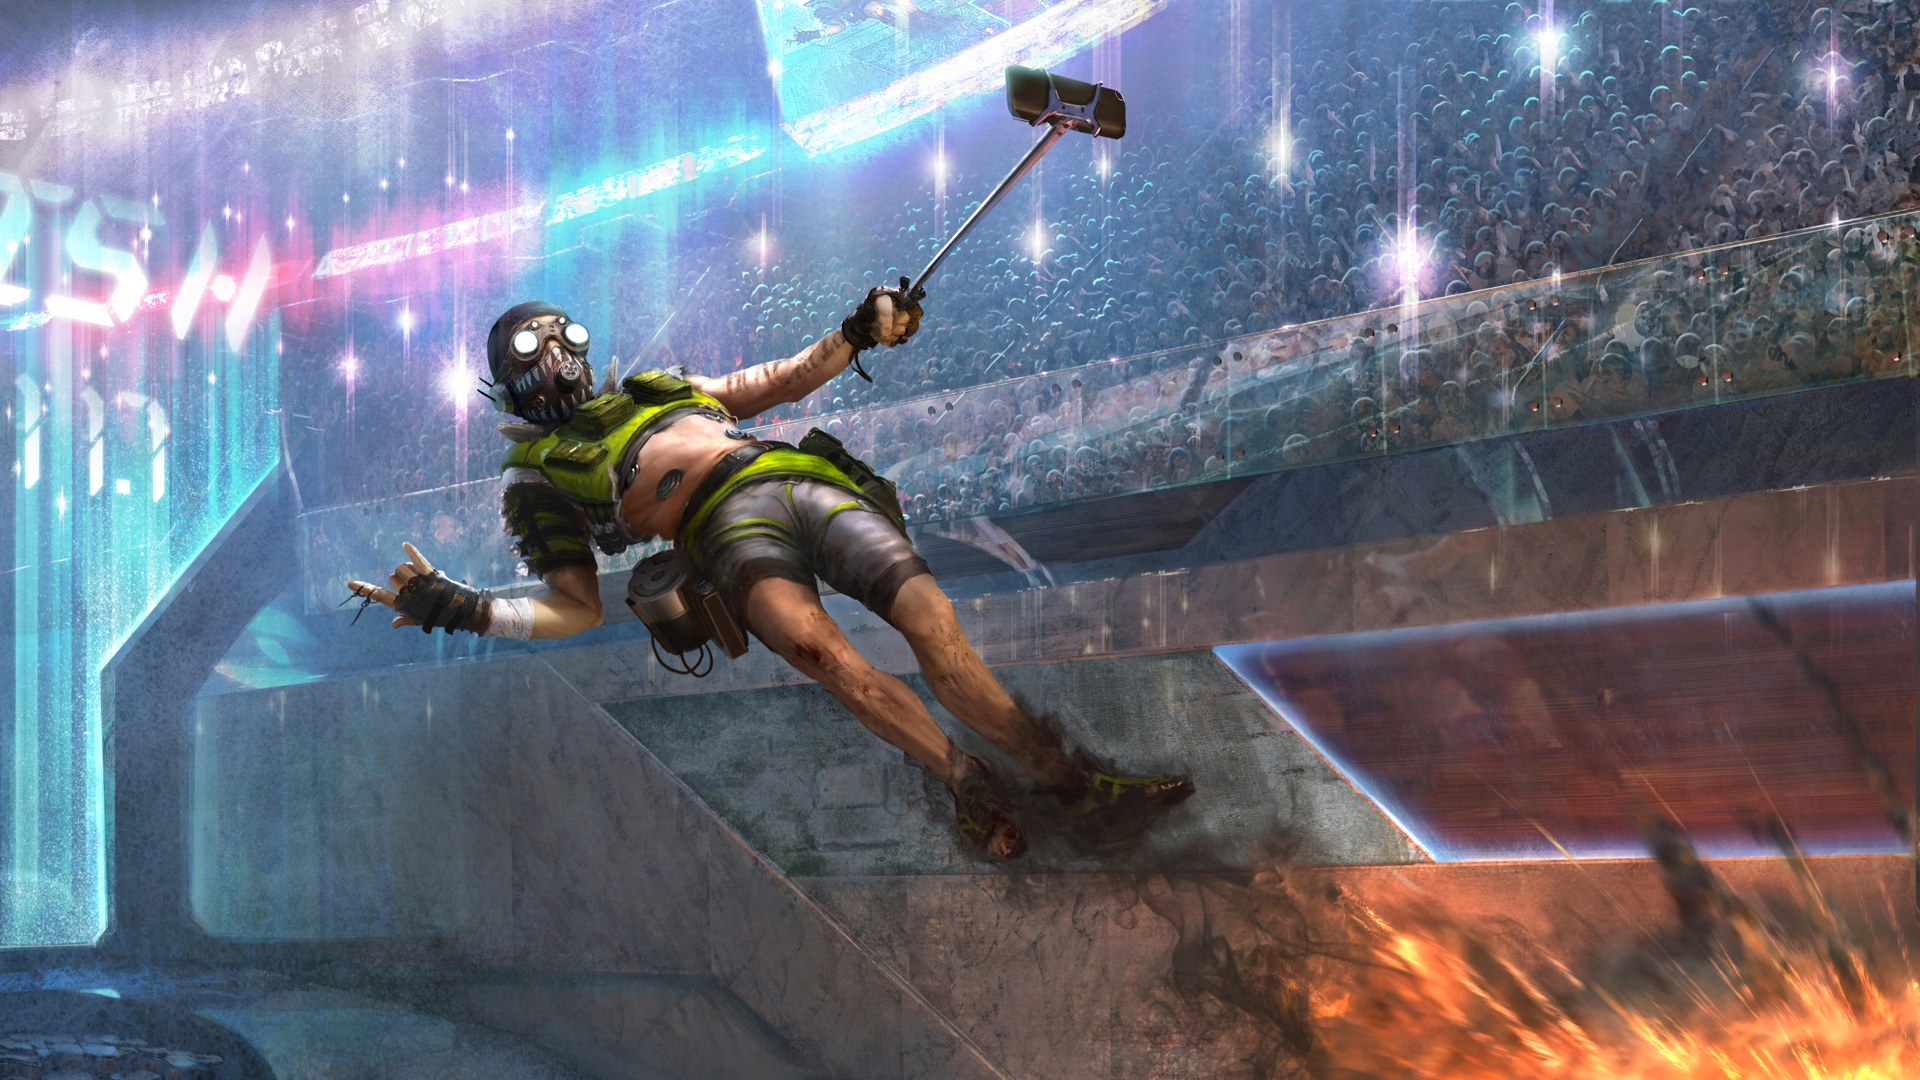 Fan favorite Armed and Dangerous limited time mode returns to Apex Legends